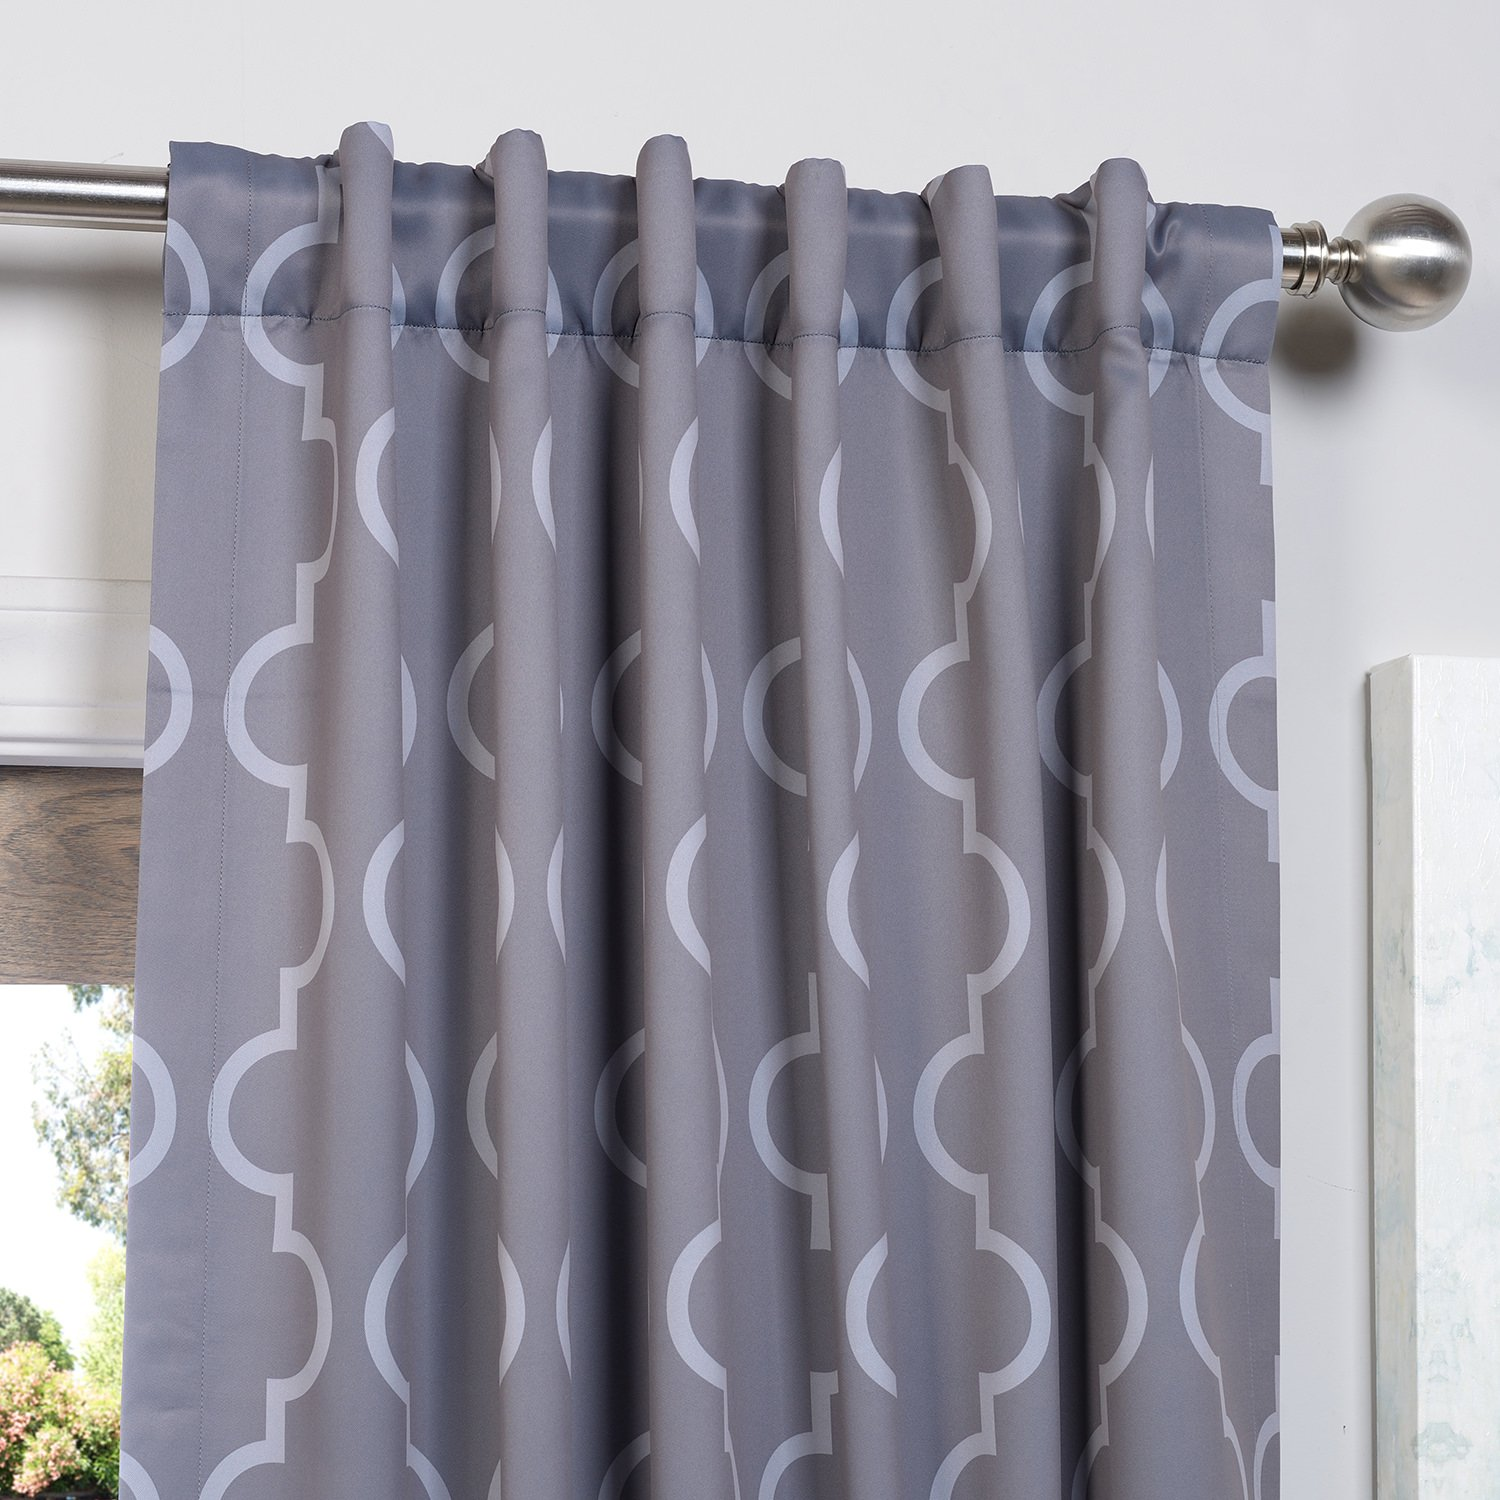 Couldn t find a picture of the curtains anywhere online this is - Amazon Com Half Price Drapes Boch Kc21 120 Blackout Curtain Seville Grey Silver Home Kitchen